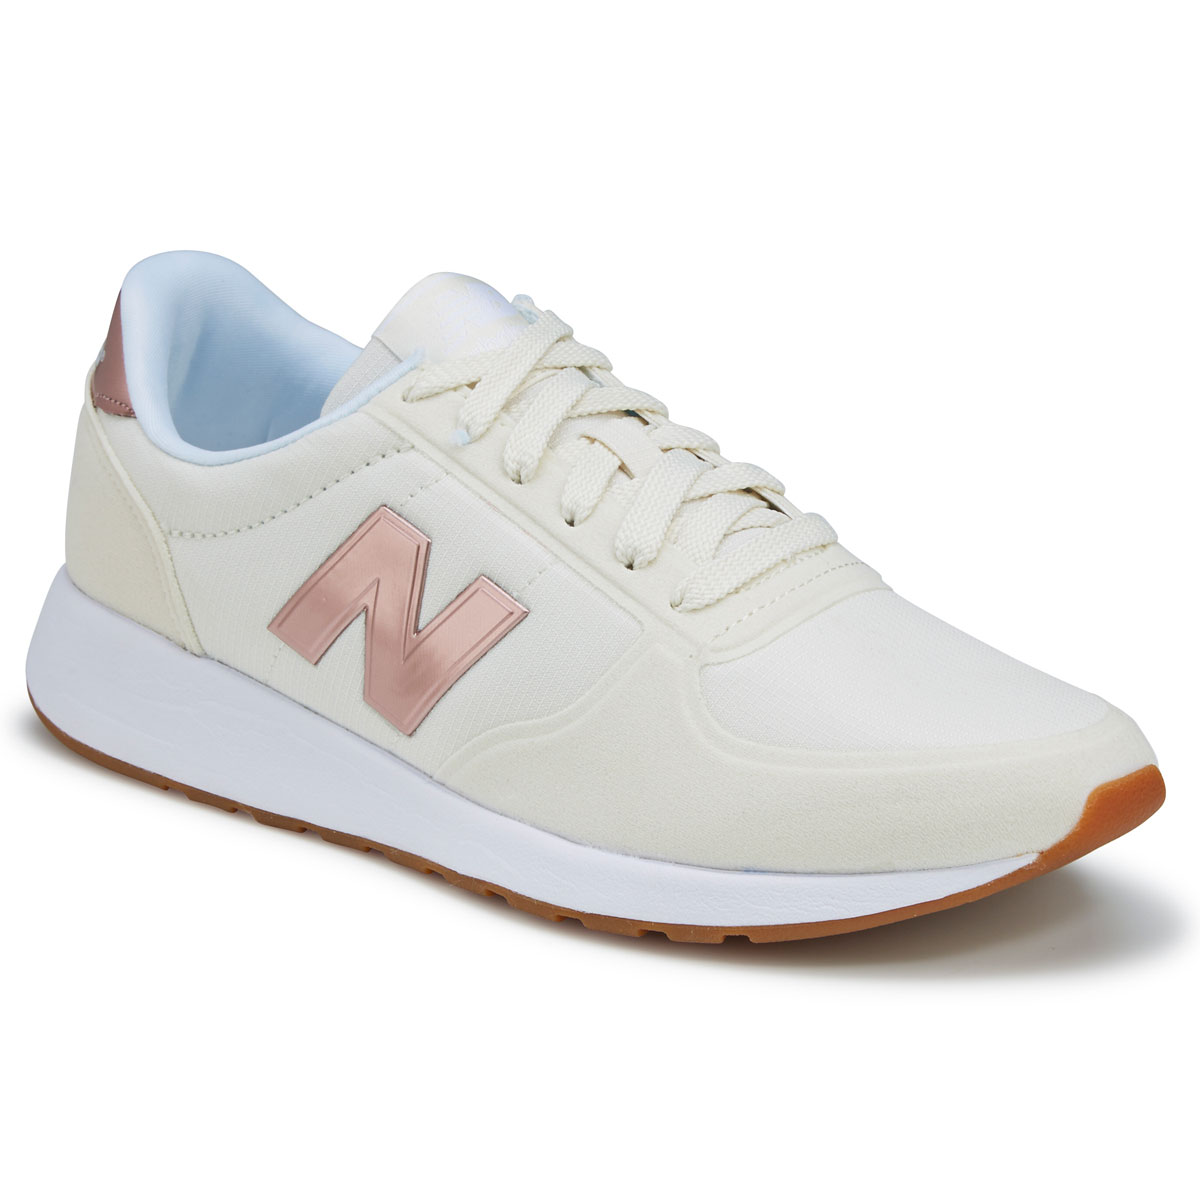 New Balance Women's 215V1 Sneakers - White, 7.5